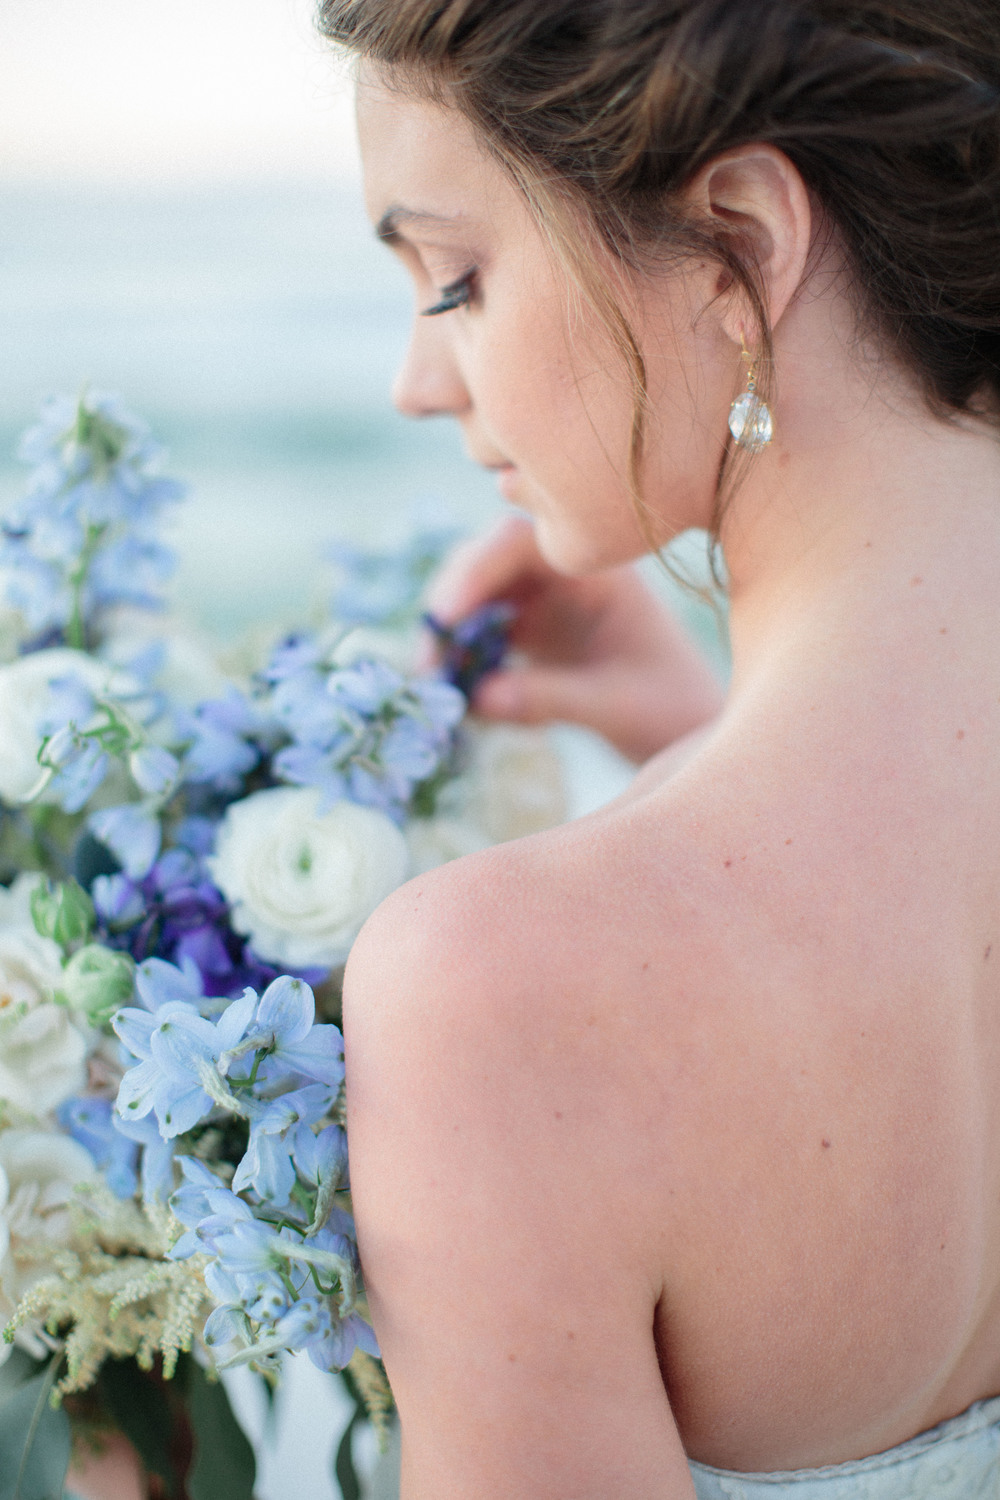 Ais-Portraits-ivey-weddings-and-events-ivory-and-beau-bridal-boutique-sunrise-wedding-sunrise-bridal-session-blue-dress-rebecca-schoneveld-wedding-dress-blue-velvet-wedding-beach-wedding-savannah-bridal-boutique-savannah-wedding-9.jpg